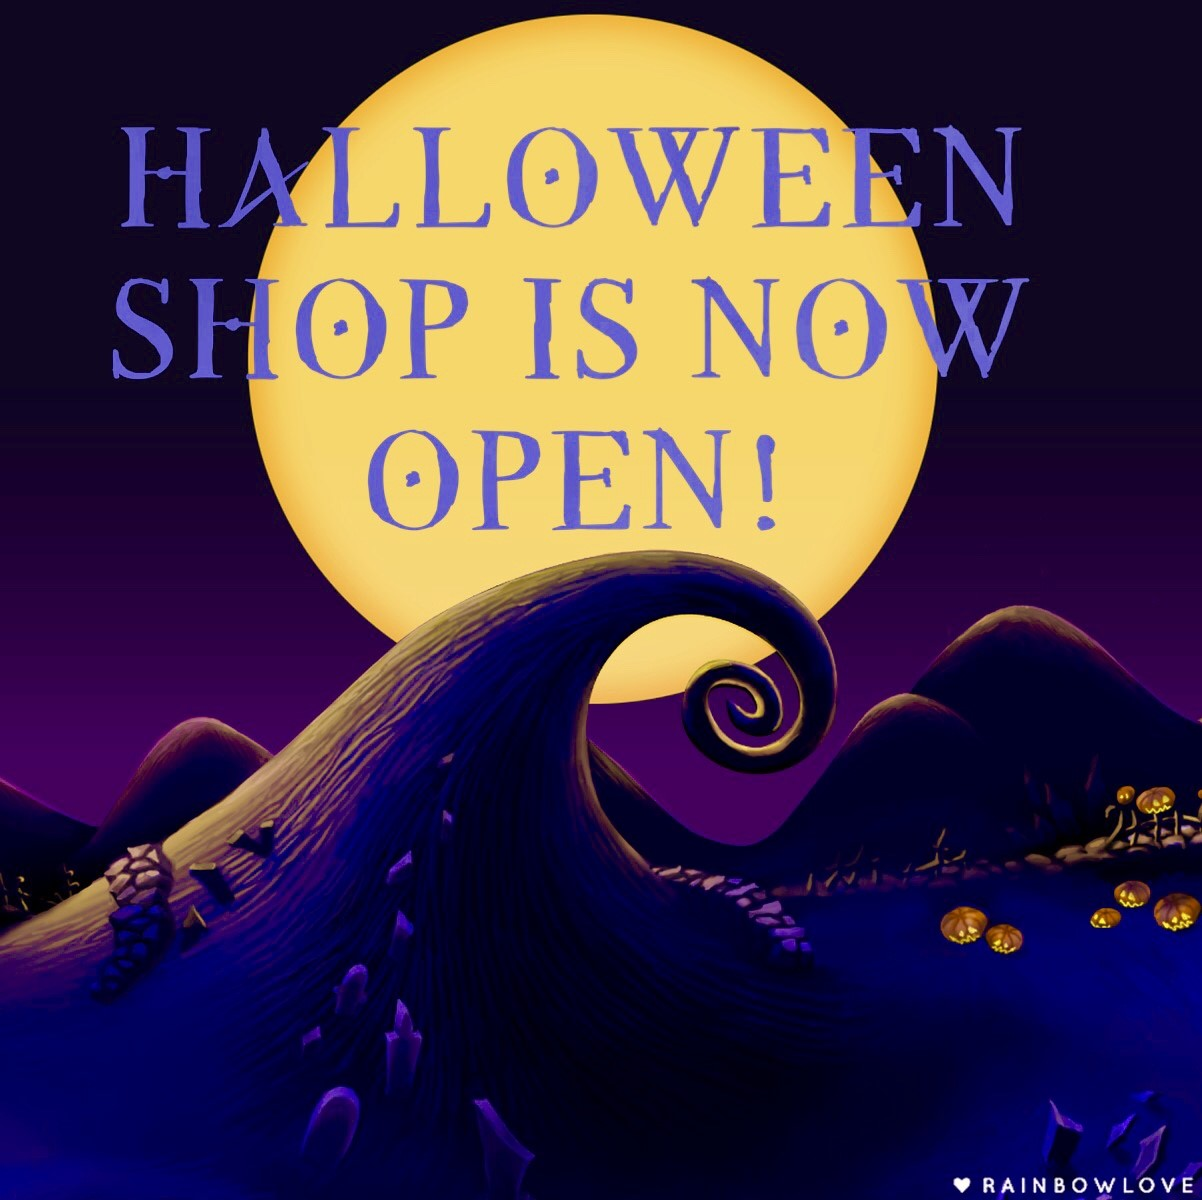 Halloween Shop Is Now Open at WildWonderlandStitch